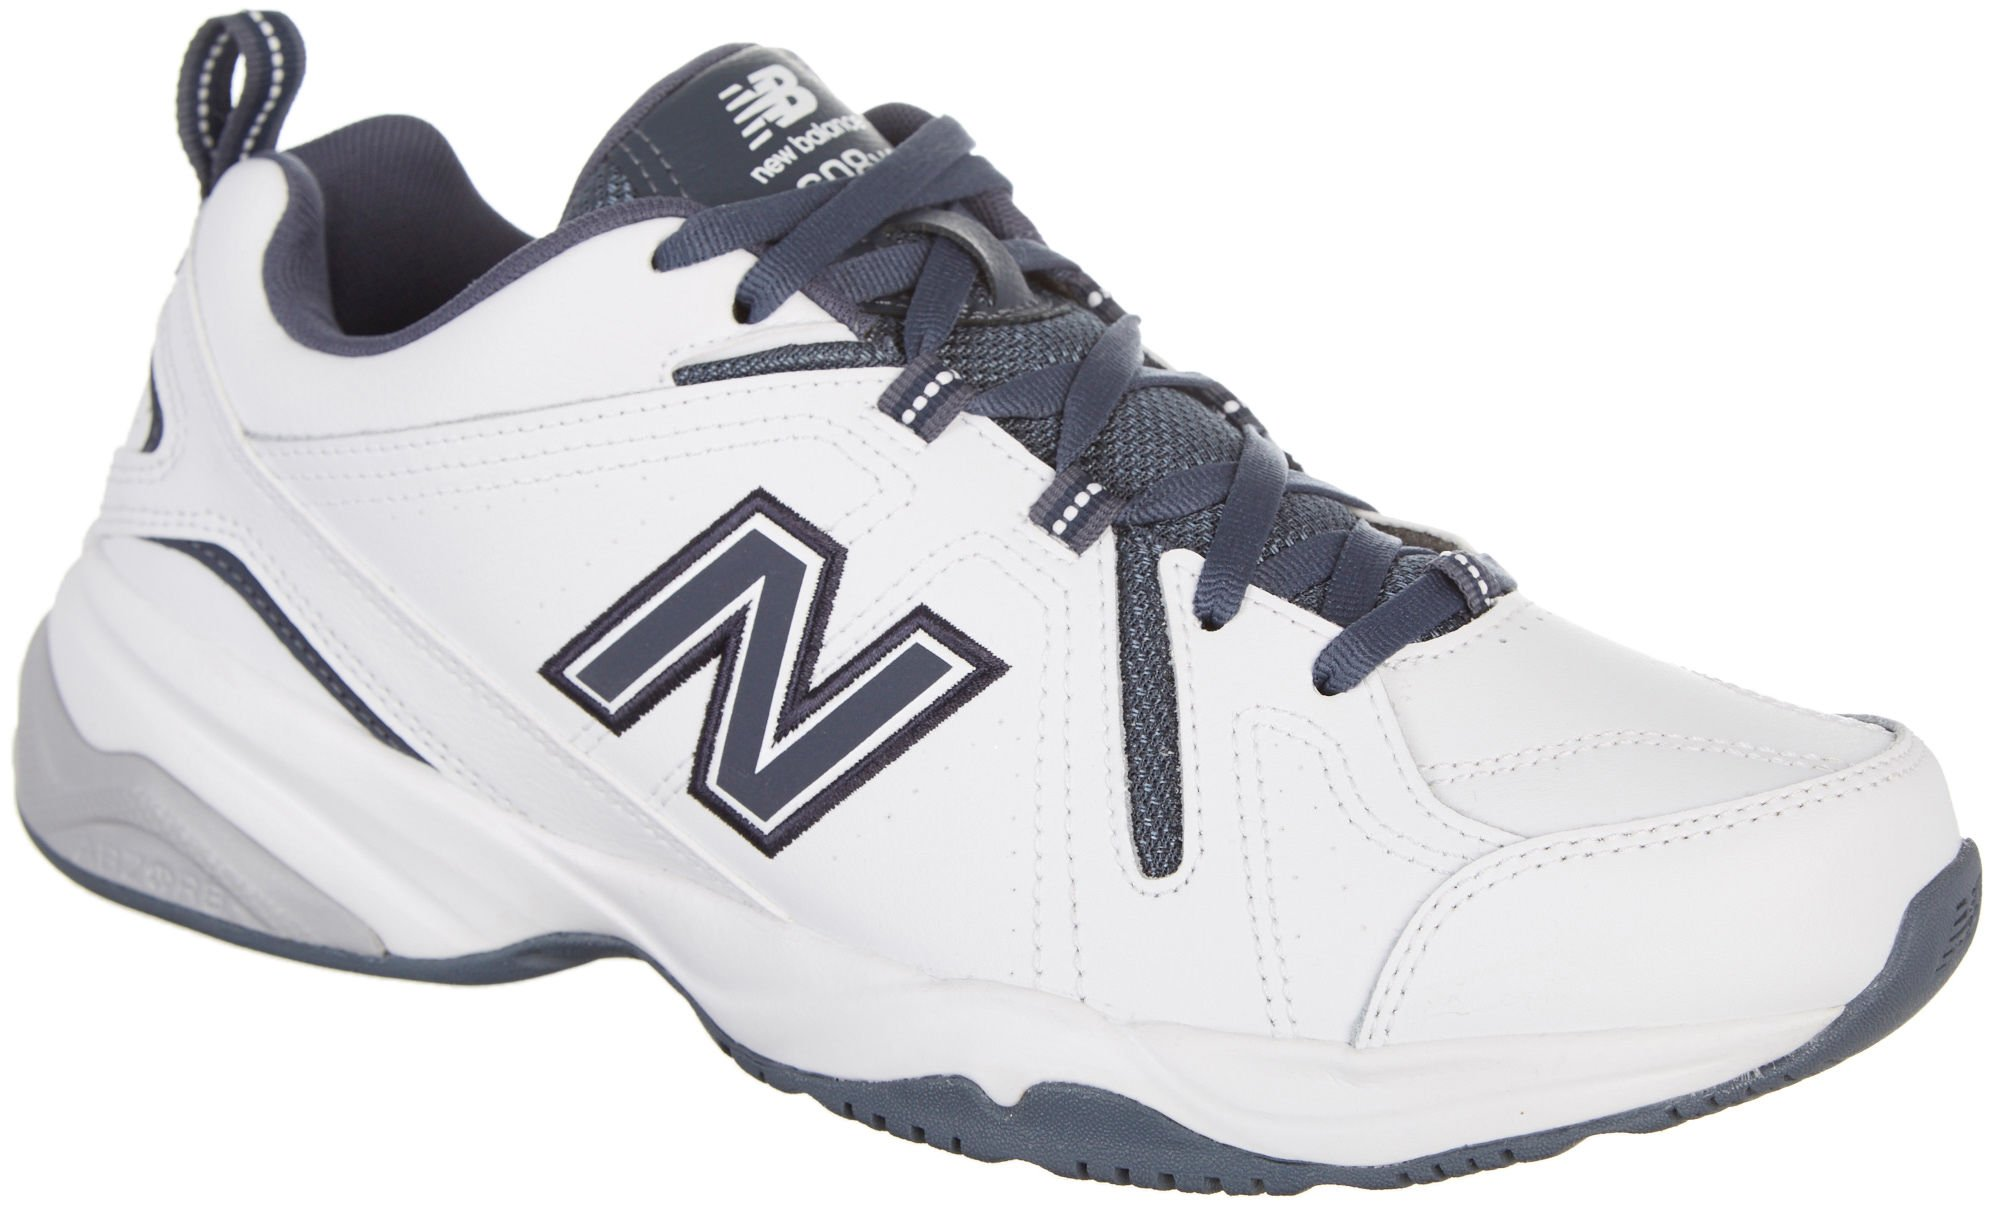 New Balance Men's MX608v4 Comfort Pack Training Shoe, White, 10 D US by New Balance